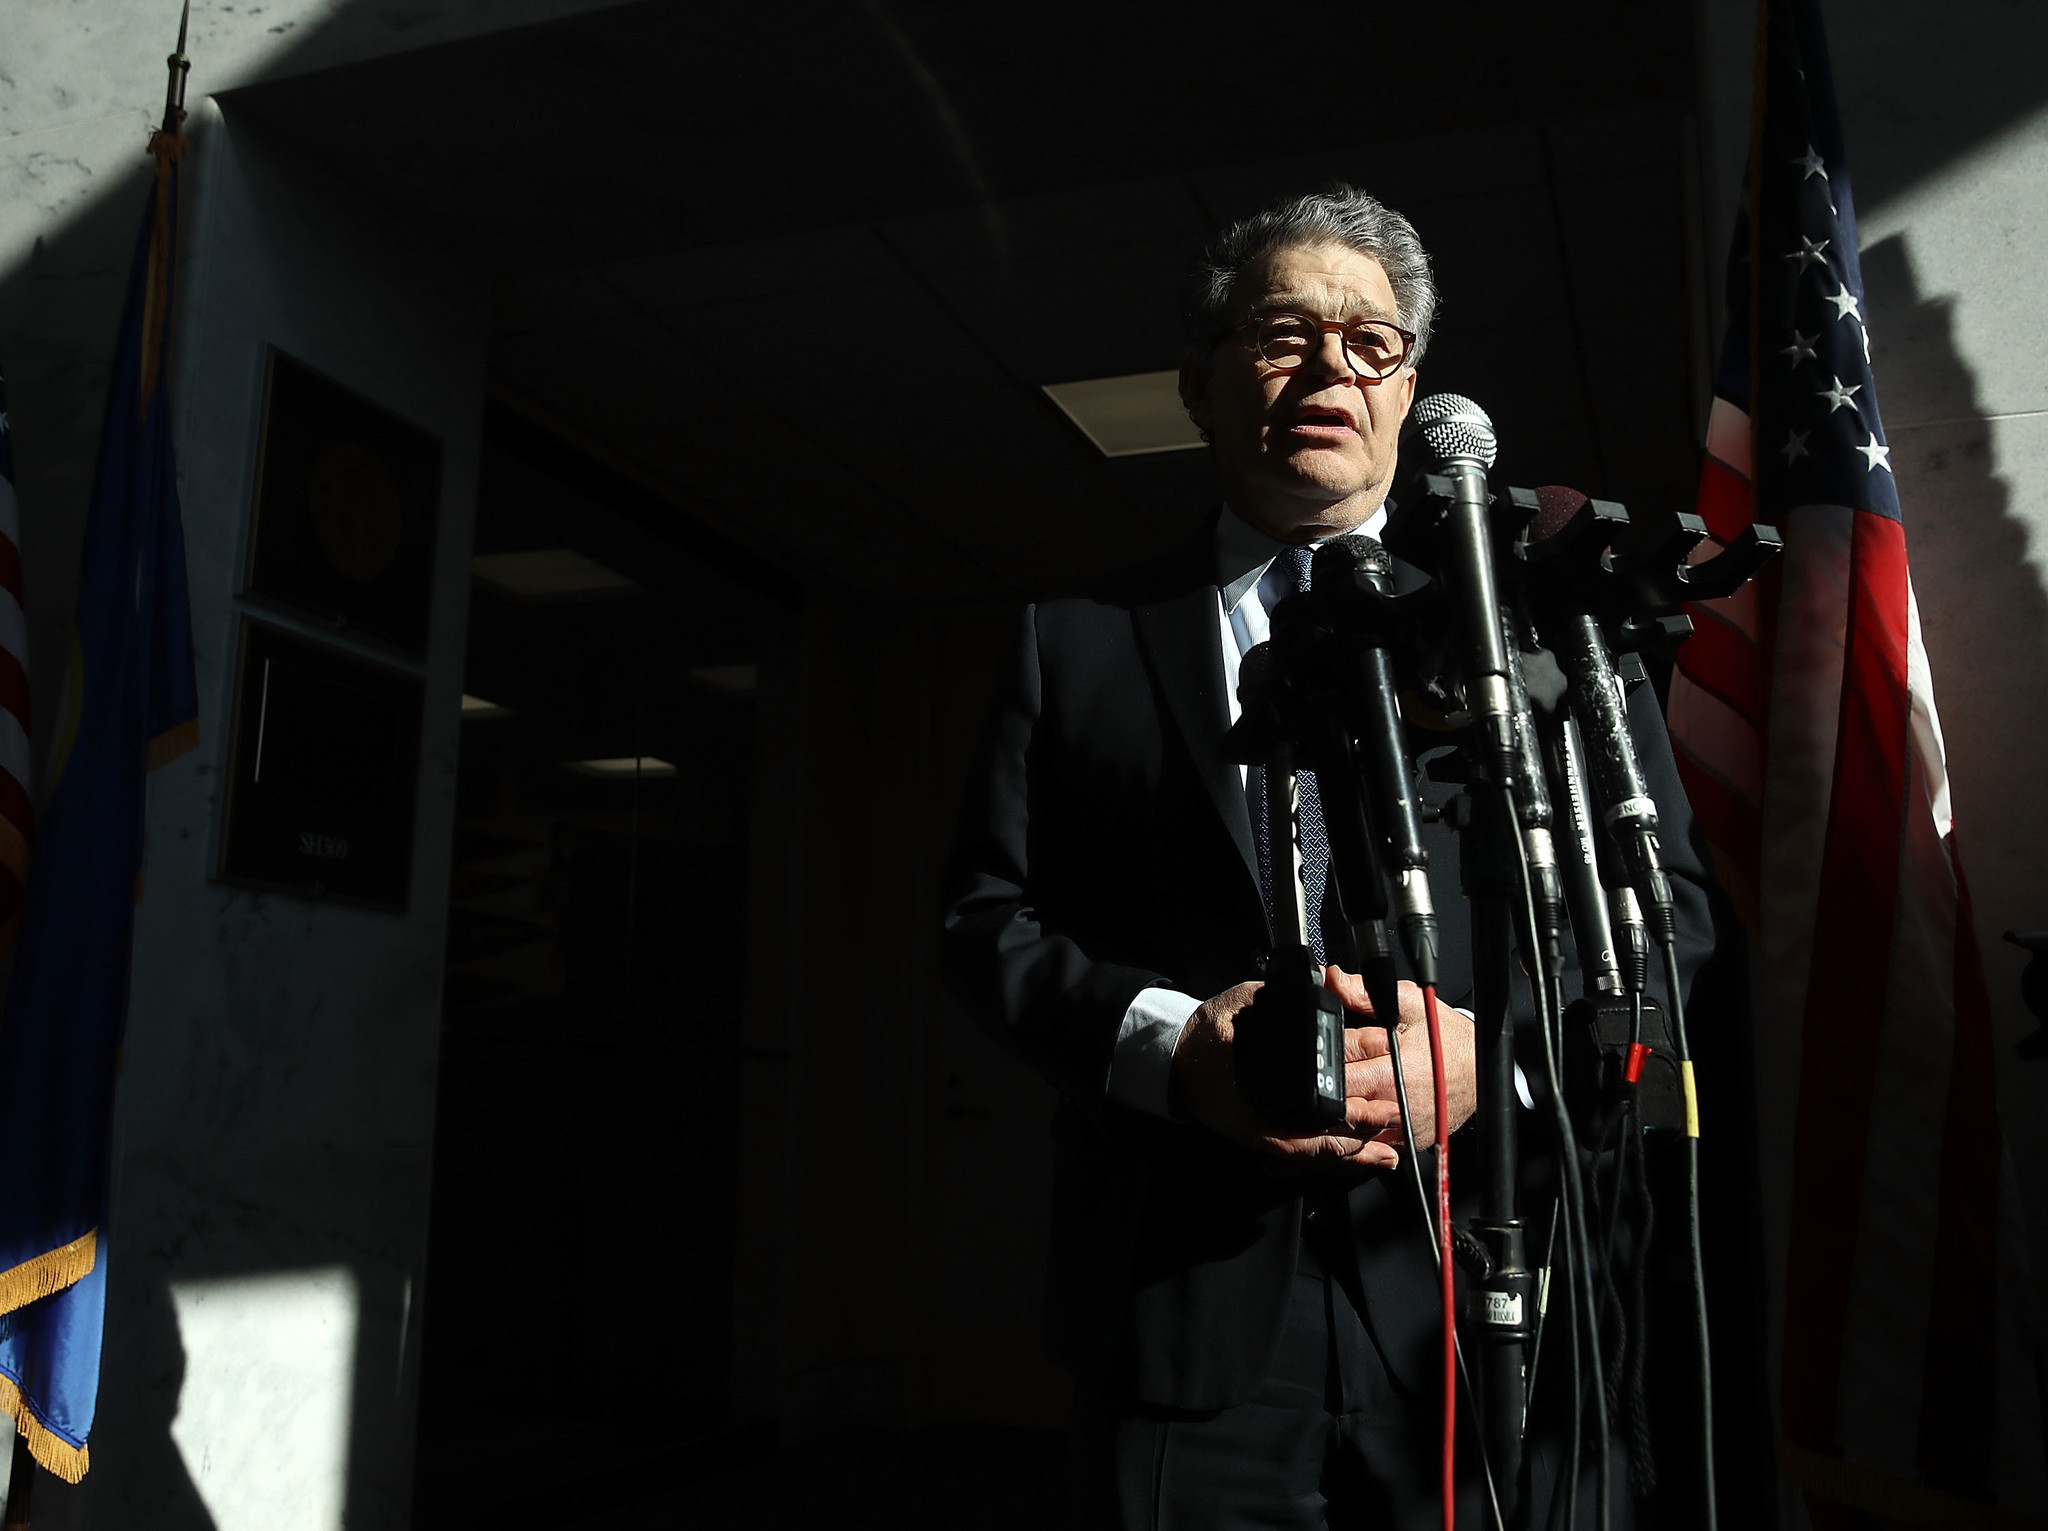 Sen. Franken says he let 'a lot of people down' with his behavior